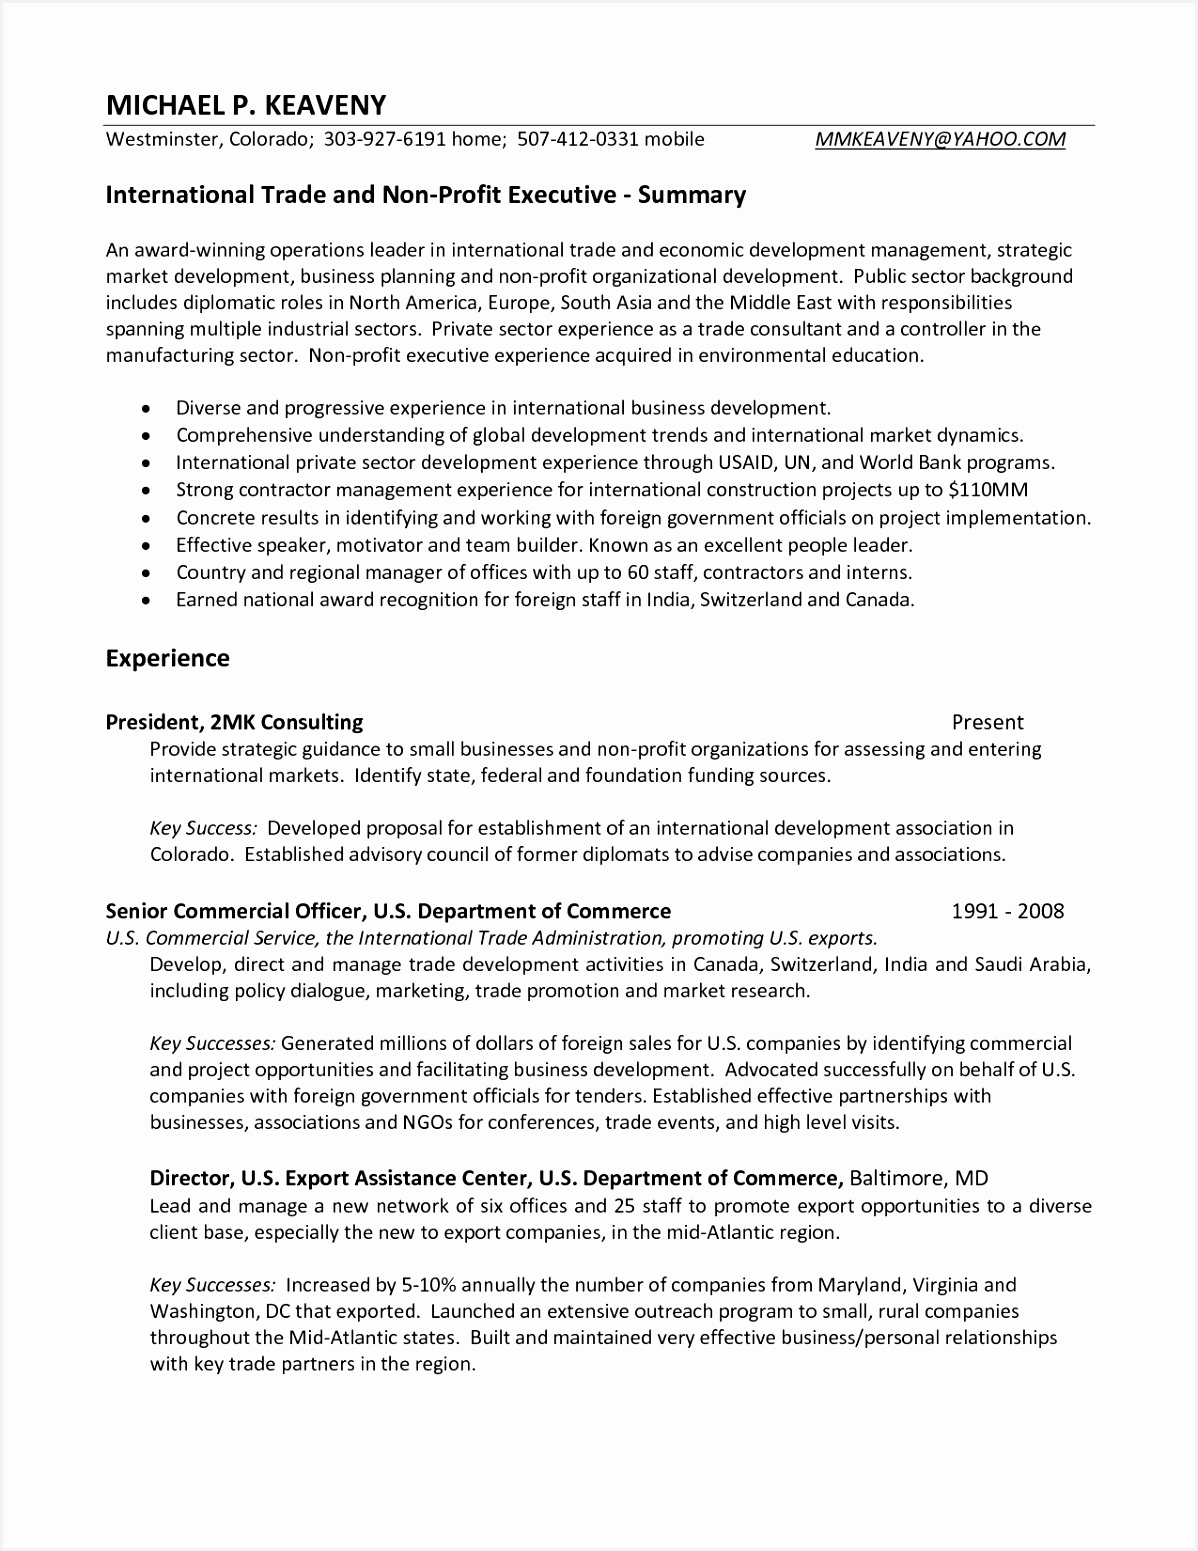 Example Of Marketing Resume Idgne Unique Marketing Director Resume Luxury Best Examples Resumes Ecologist15511198